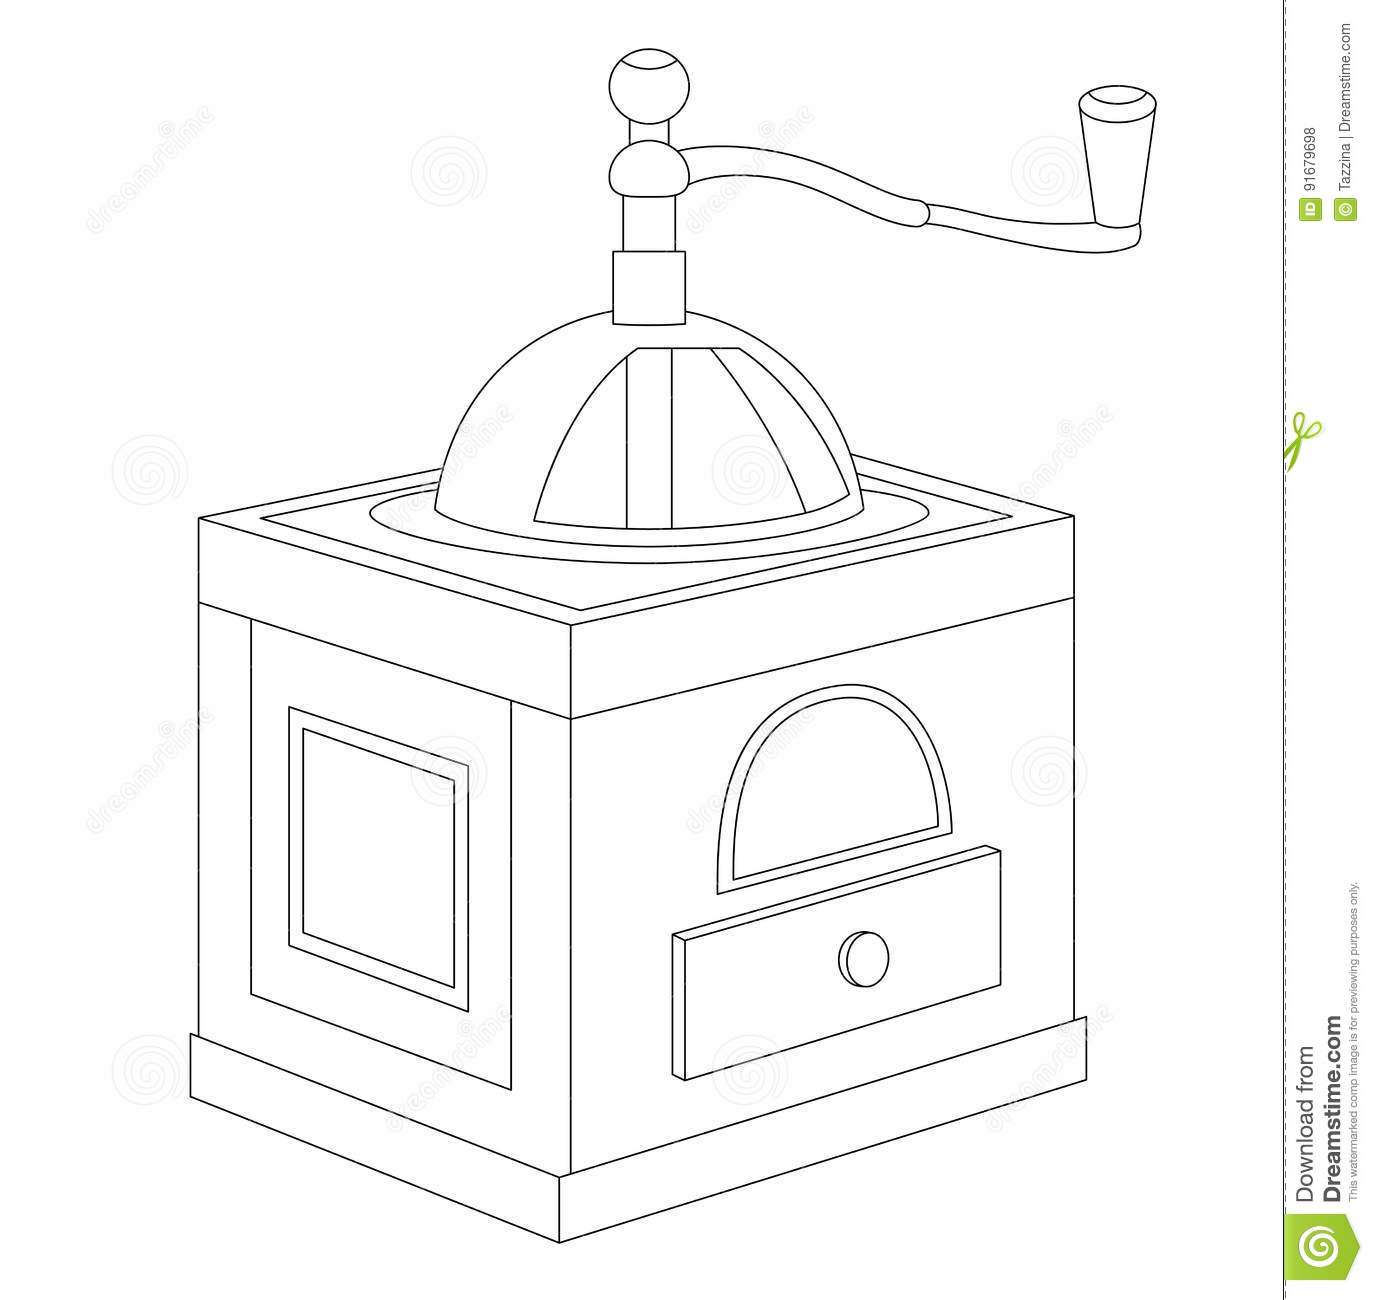 Manual coffee grinder stock vector. Illustration of